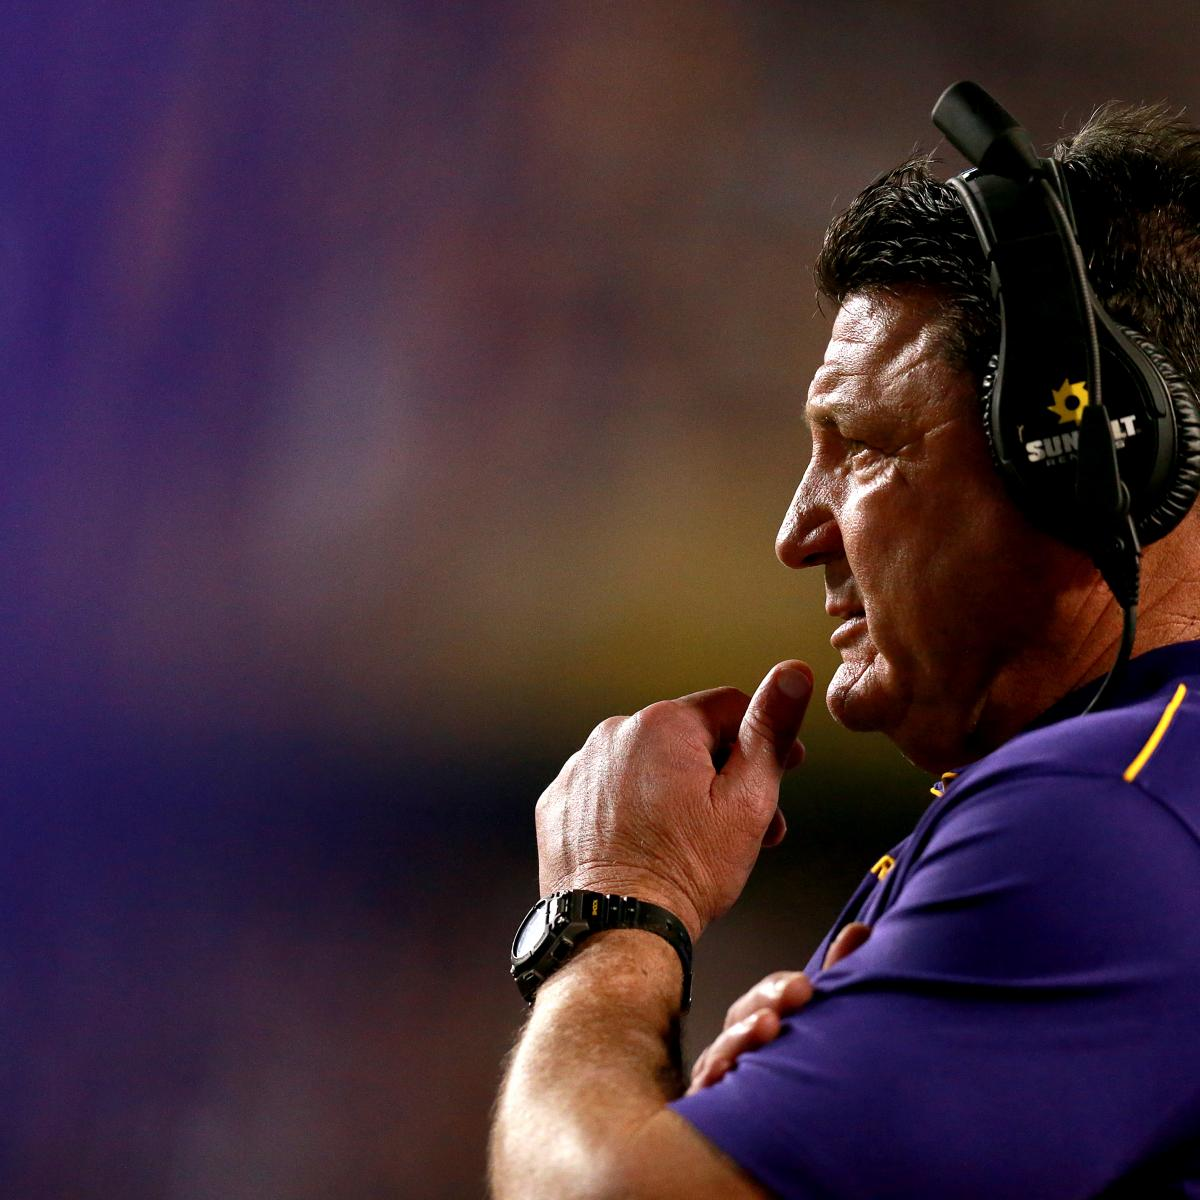 Adam Kramer on College Football: Ed Orgeron's LSU Revival Is Nearly Complete